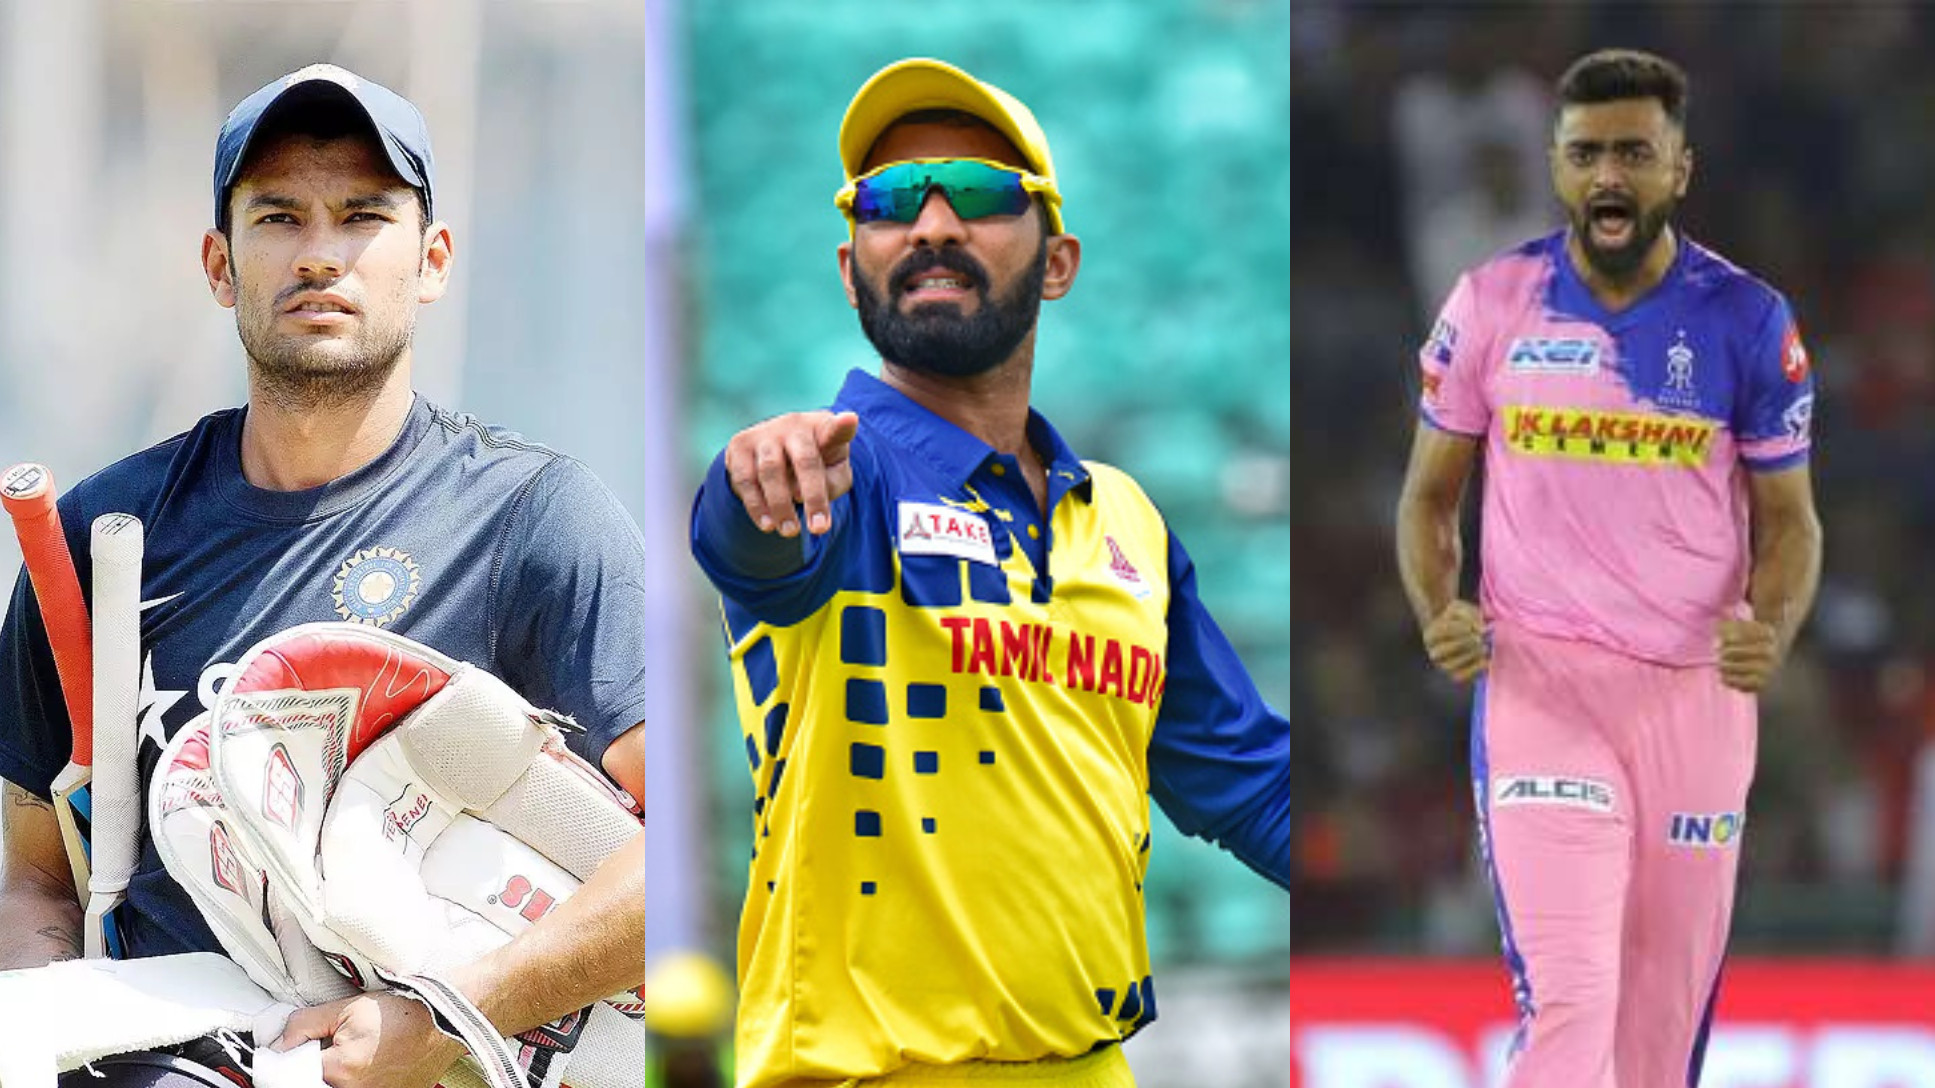 SL v IND 2021: 5 unlucky players not to get selected for India's white-ball tour for Sri Lanka